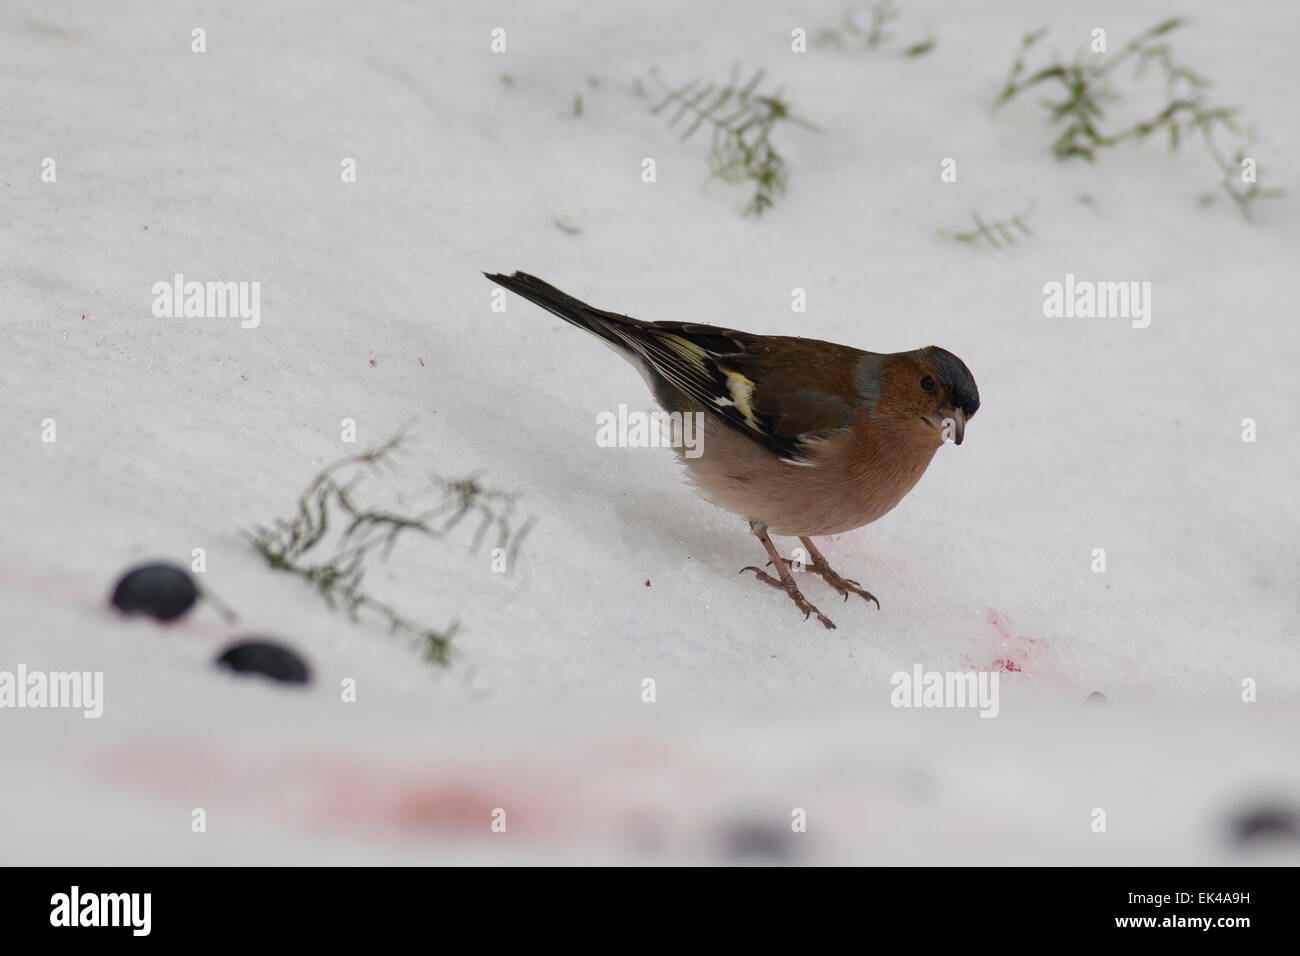 Chaffinch. Male chaffinch (Fringilla coelebs) in the snow. Chaffinches are non-migratory birds that eat mainly seeds. - Stock Image